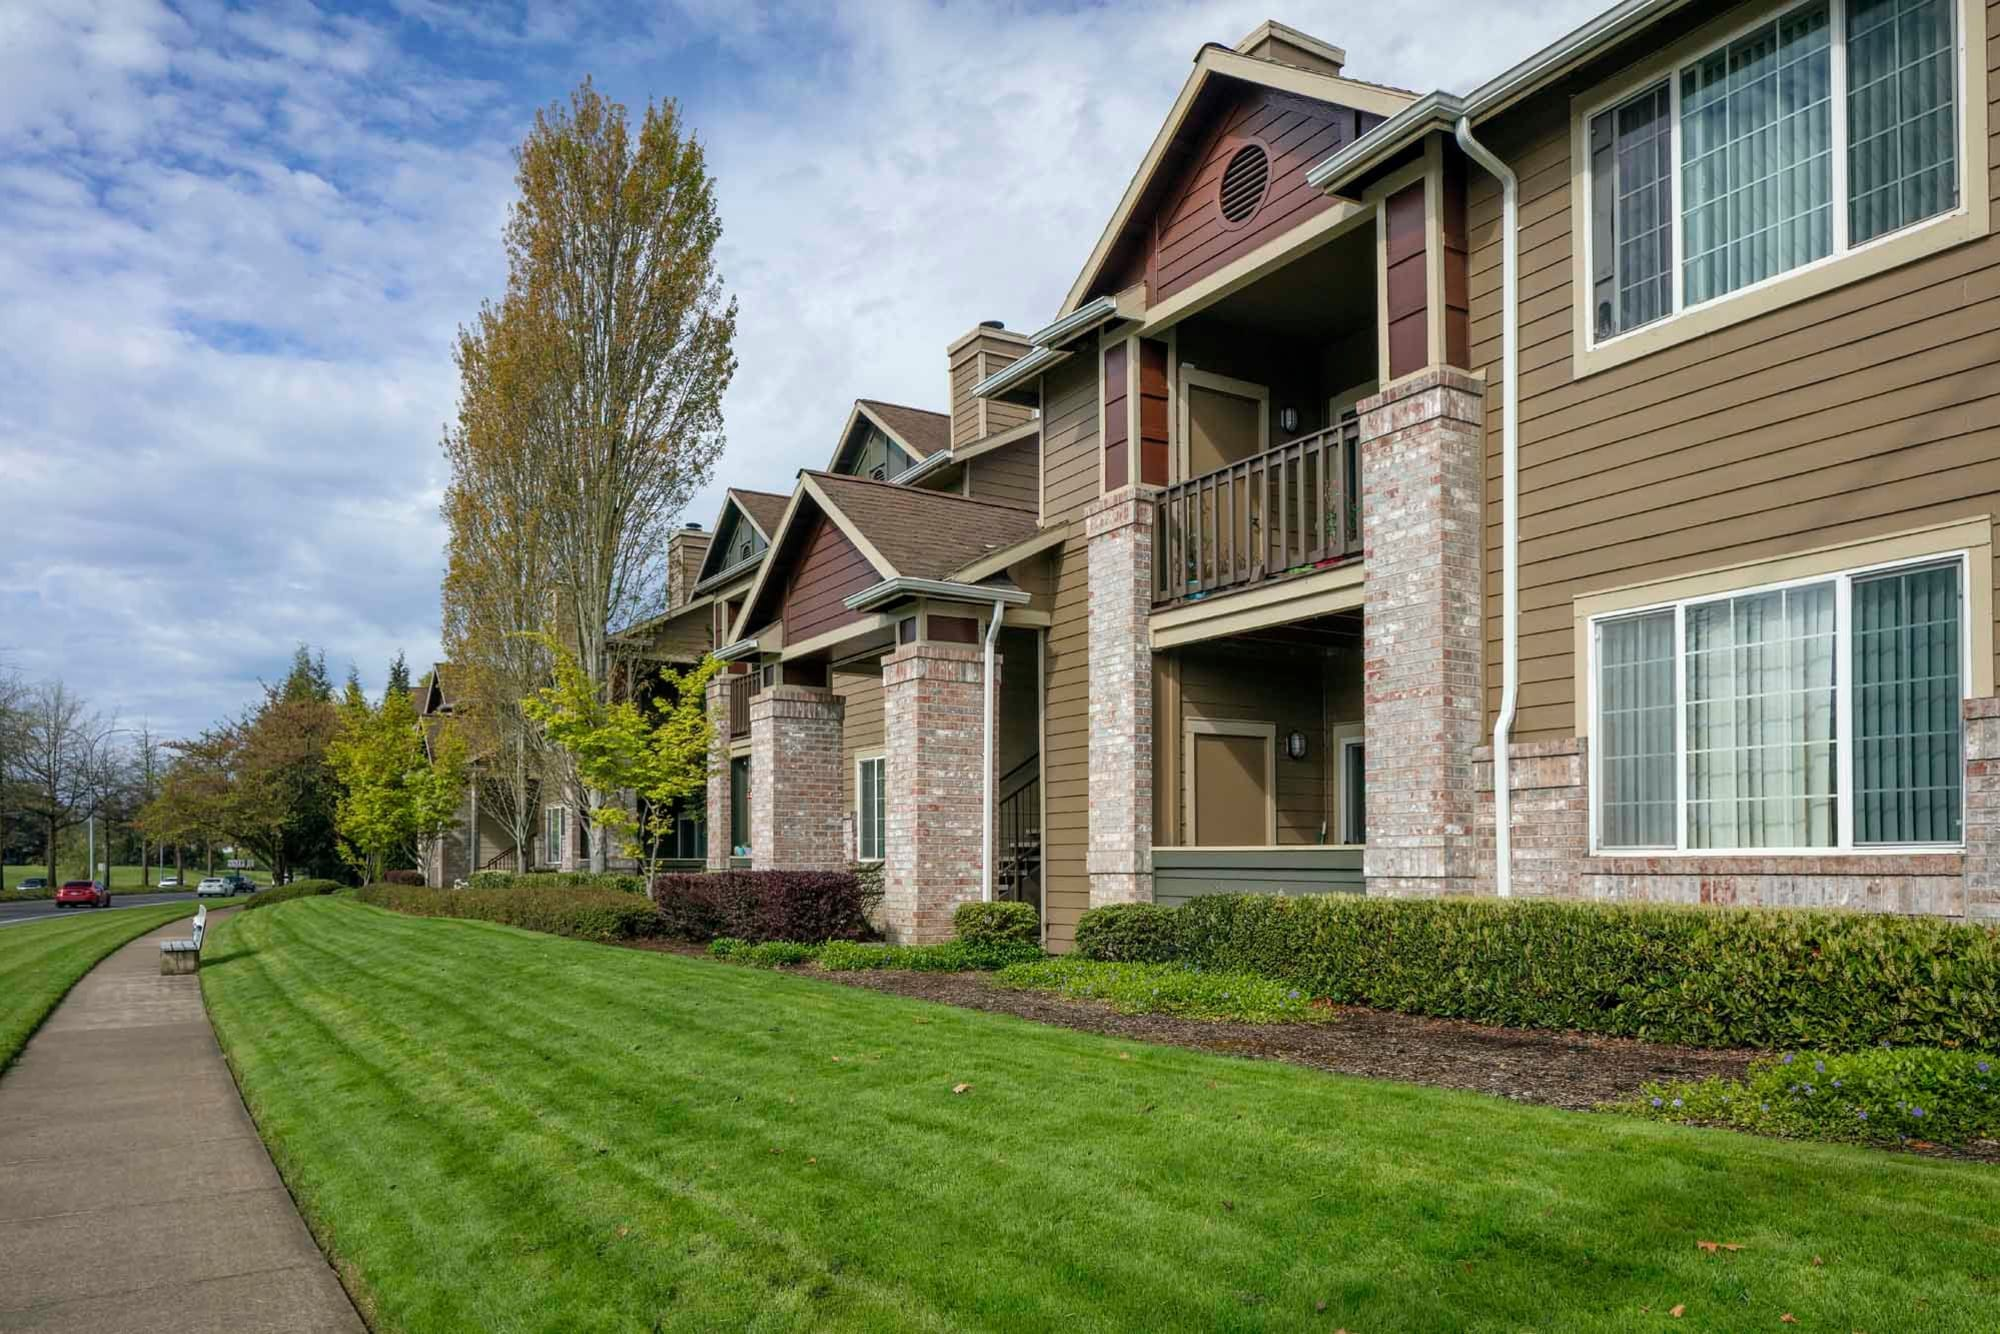 The side of the building with beautiful landscaping and lush green grass near The Grove at Orenco Station in Hillsboro, Oregon